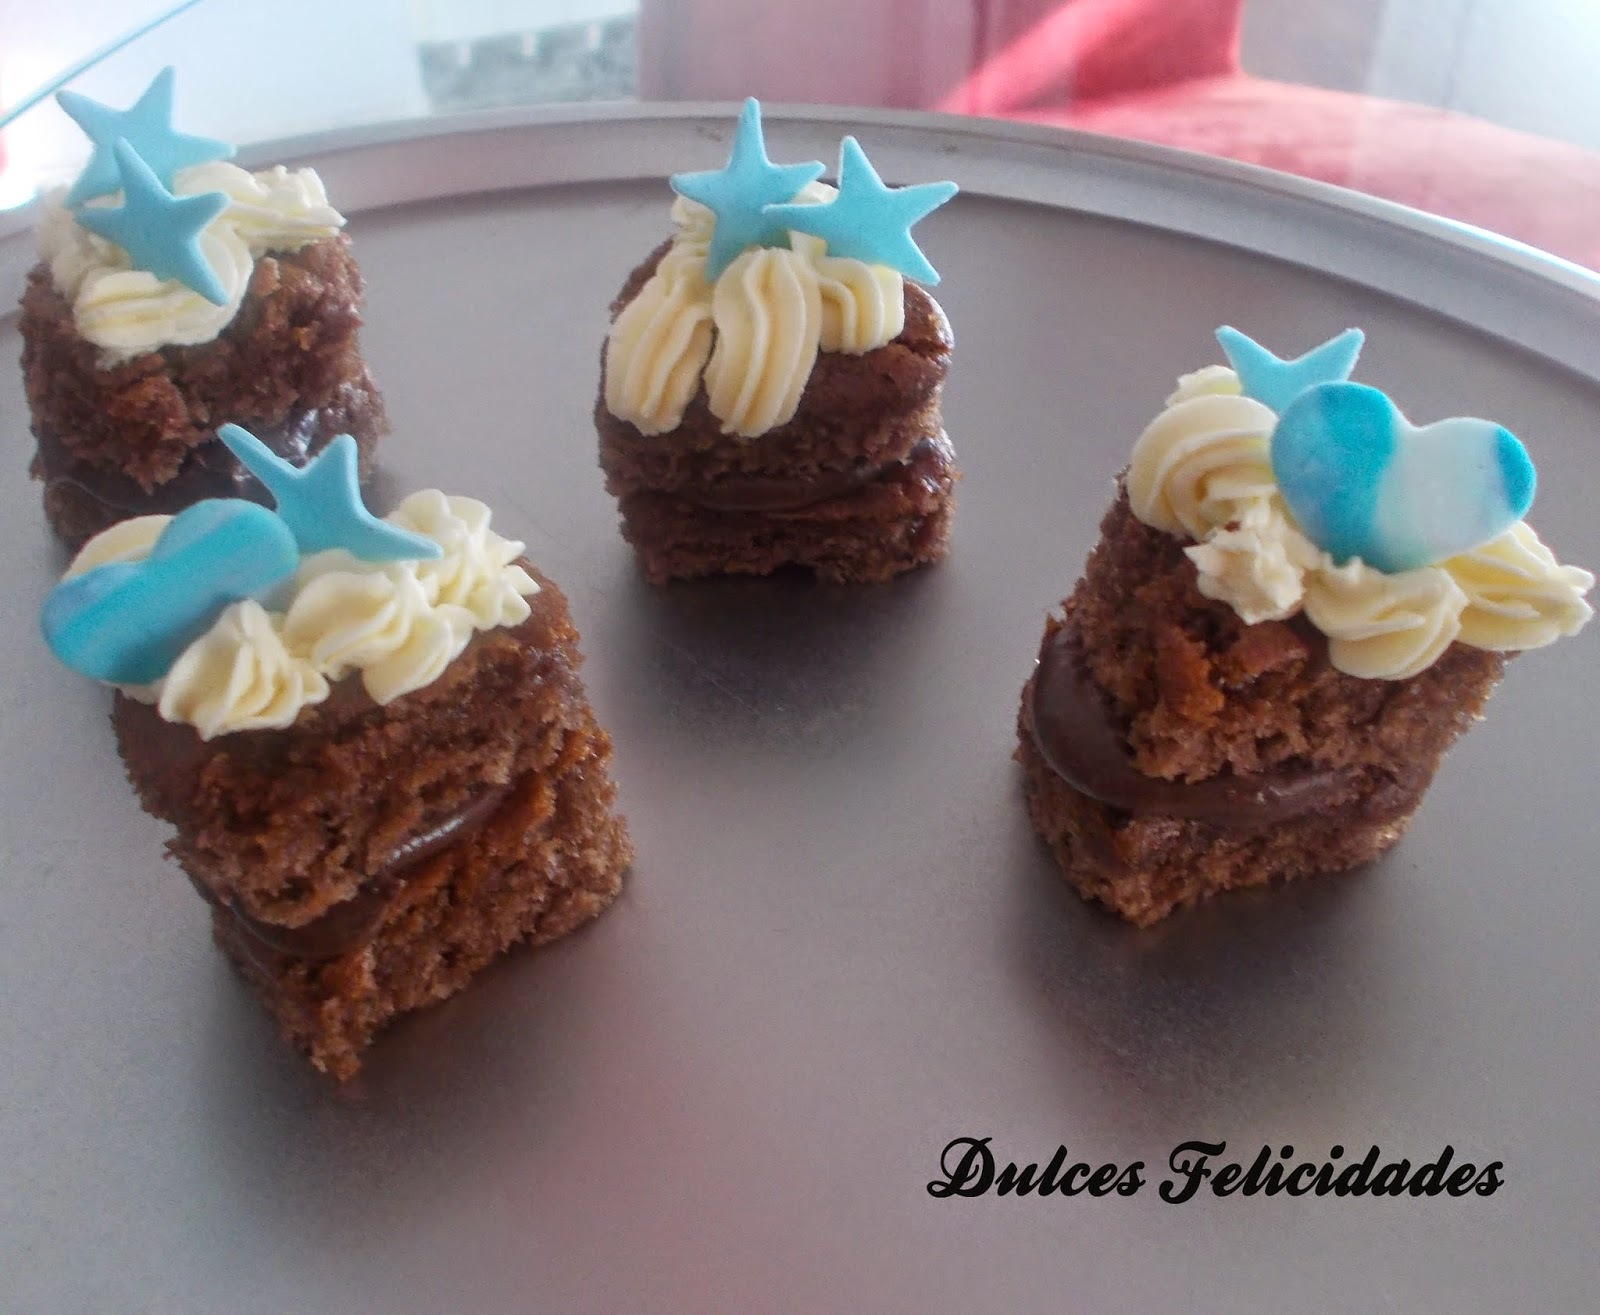 Pastelitos con ganache de chocolate y buttercream